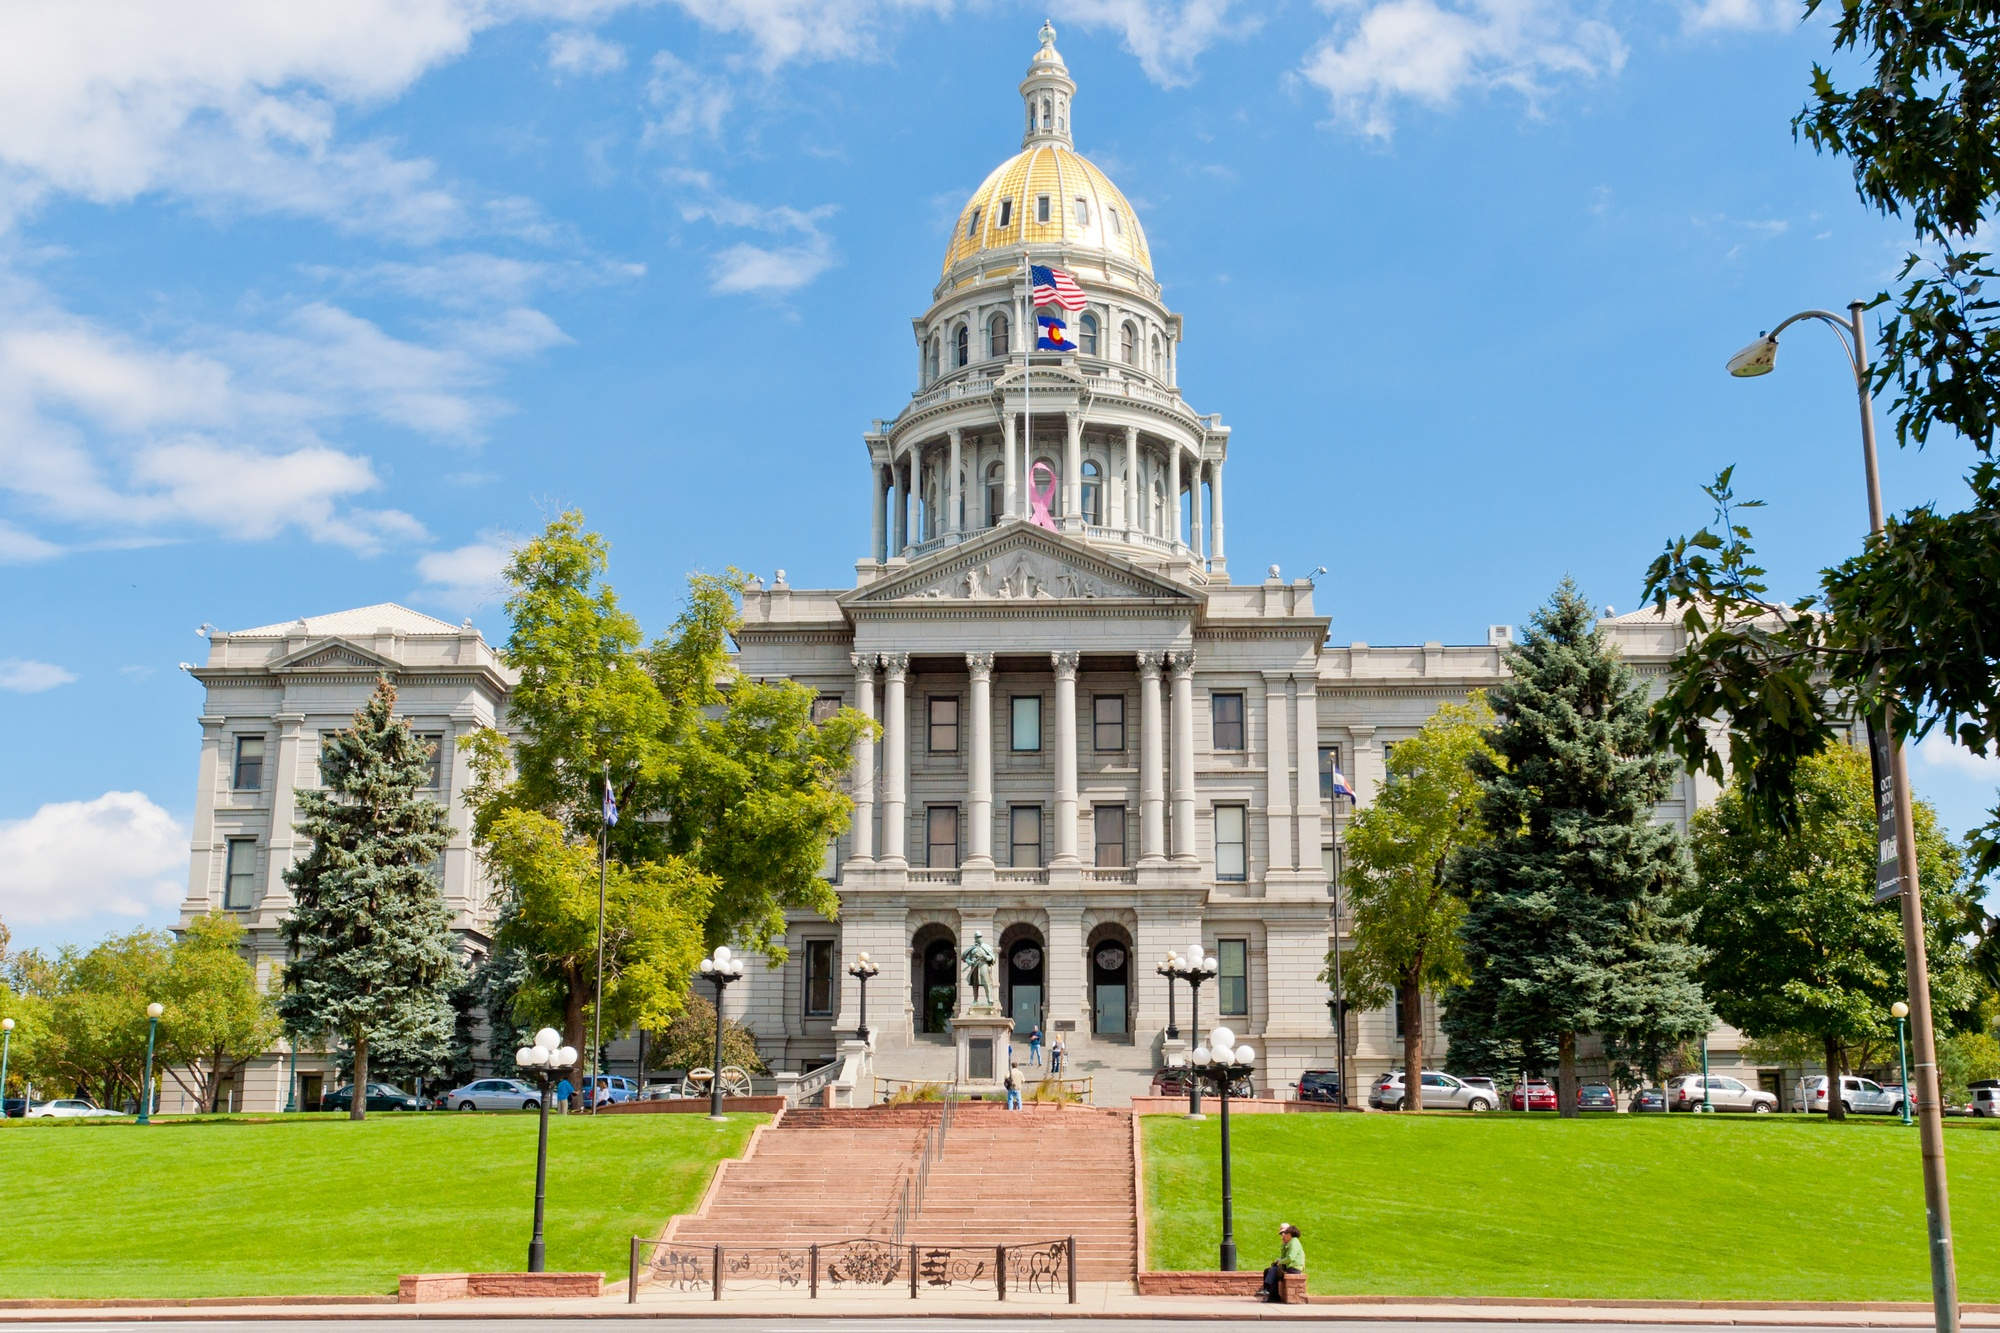 State Capitol of Colorado